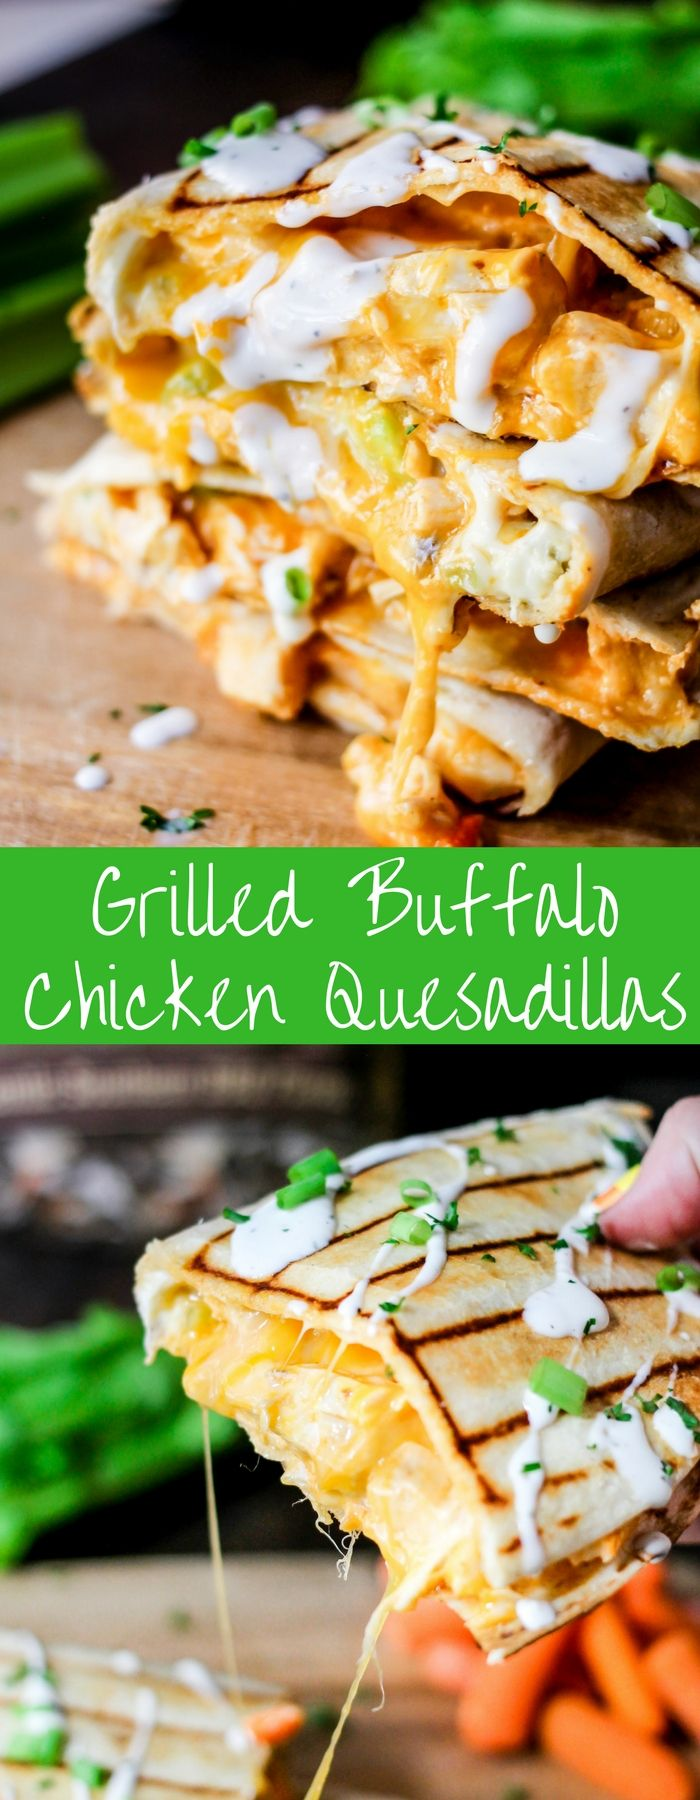 Classic buffalo chicken flavors mixed together and grilled between two crunchy tortillas makes the perfect Grilled Buffalo Chicken Quesadillas. ad @cowboycharcoal